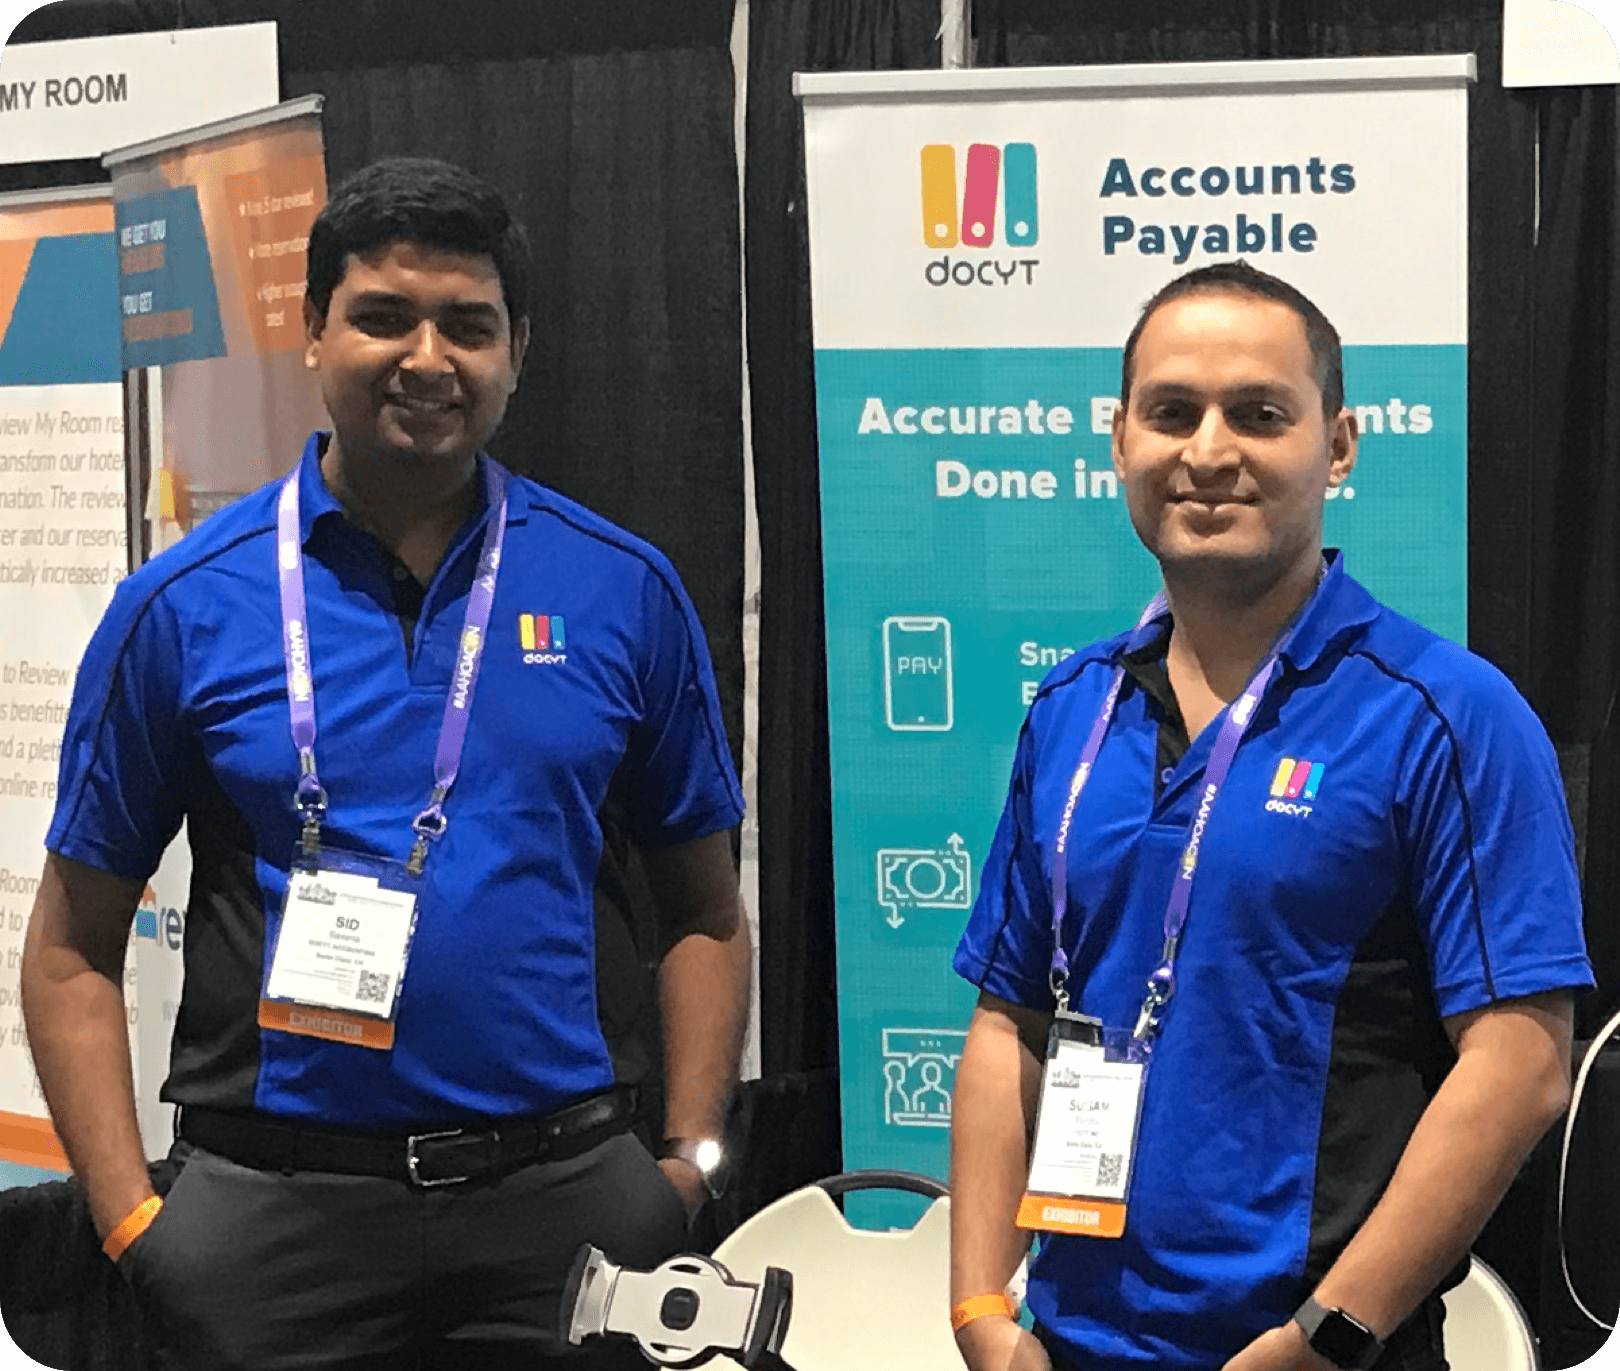 Sid Saxena and Sugam Pandey, Docyt Co-Founders